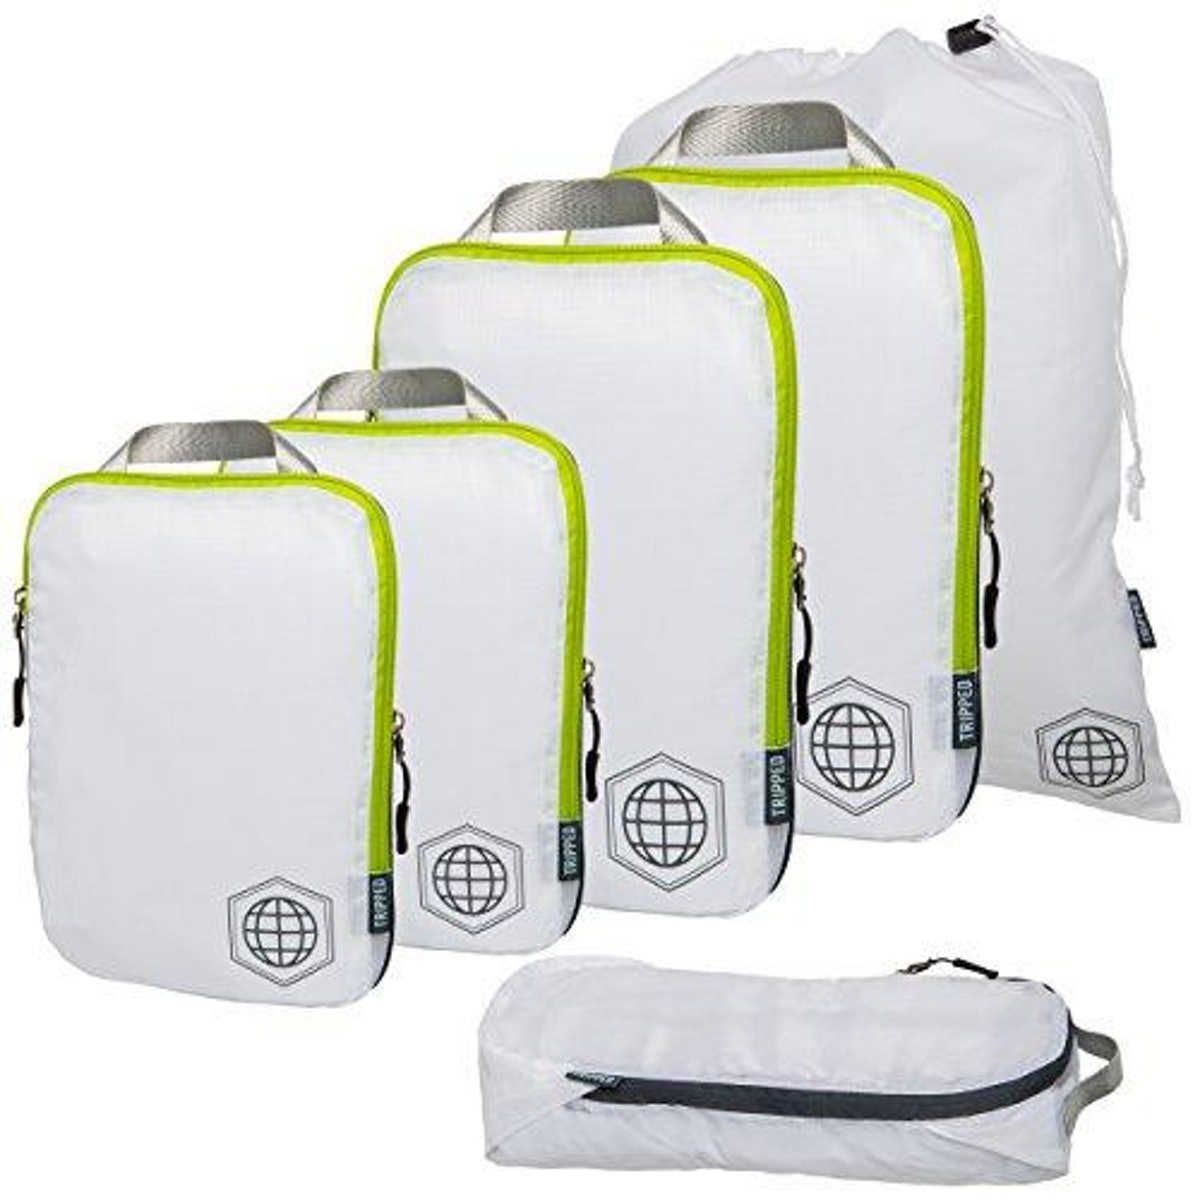 TRIPPED Travel Gear Compression Travel Bags (Set of 6)